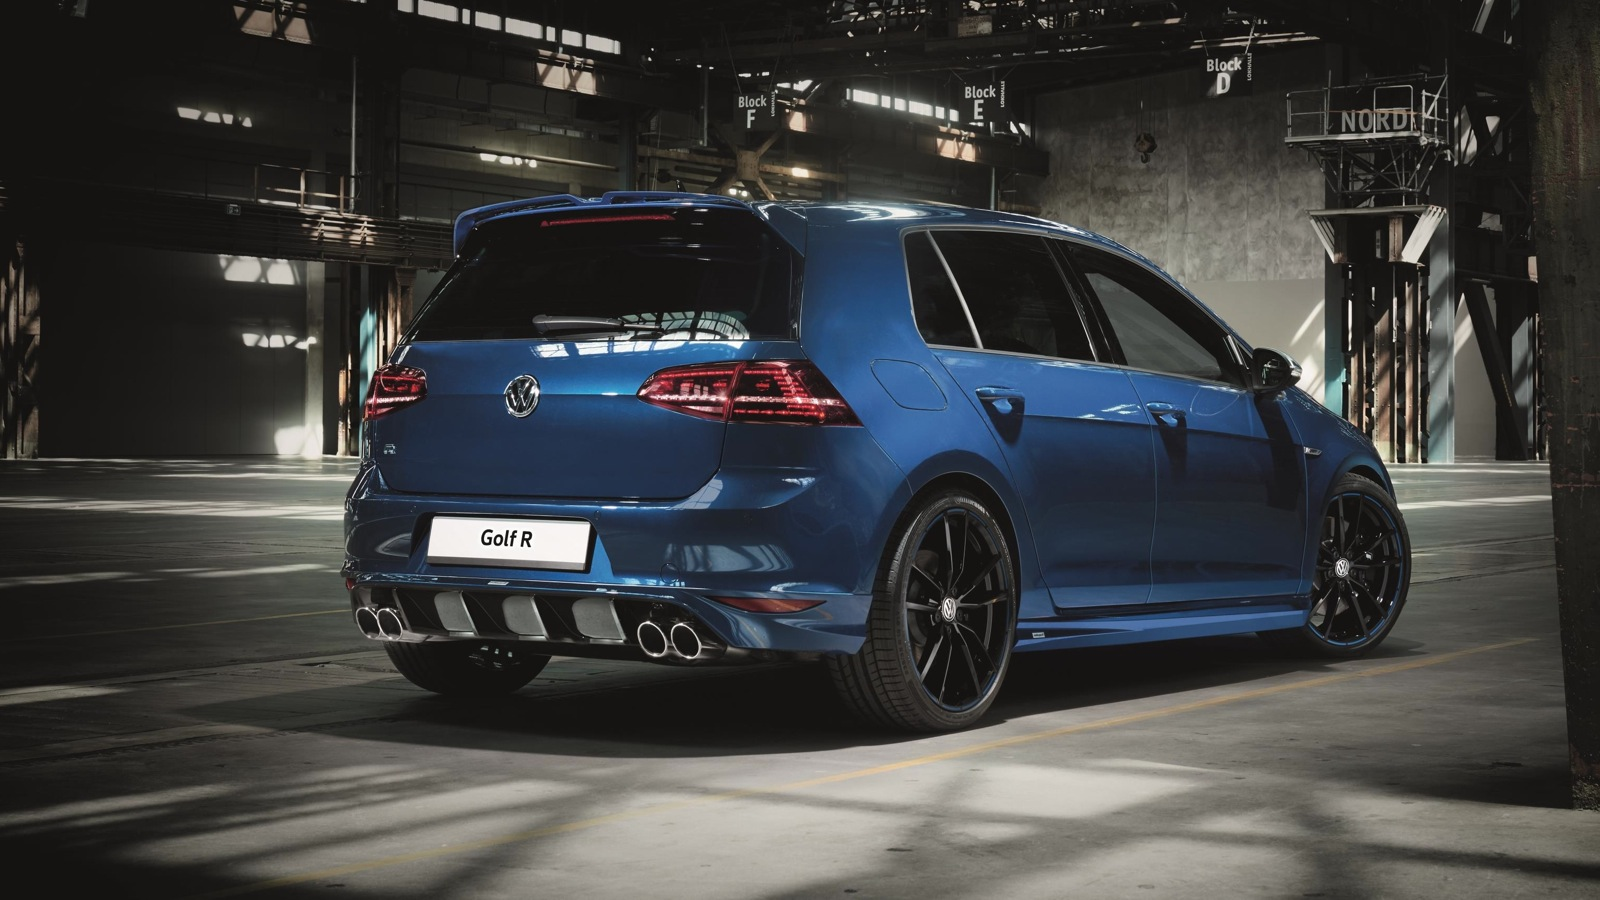 volkswagen golf gti and golf r to be offered with optional oettinger extras photos 1 of 5. Black Bedroom Furniture Sets. Home Design Ideas